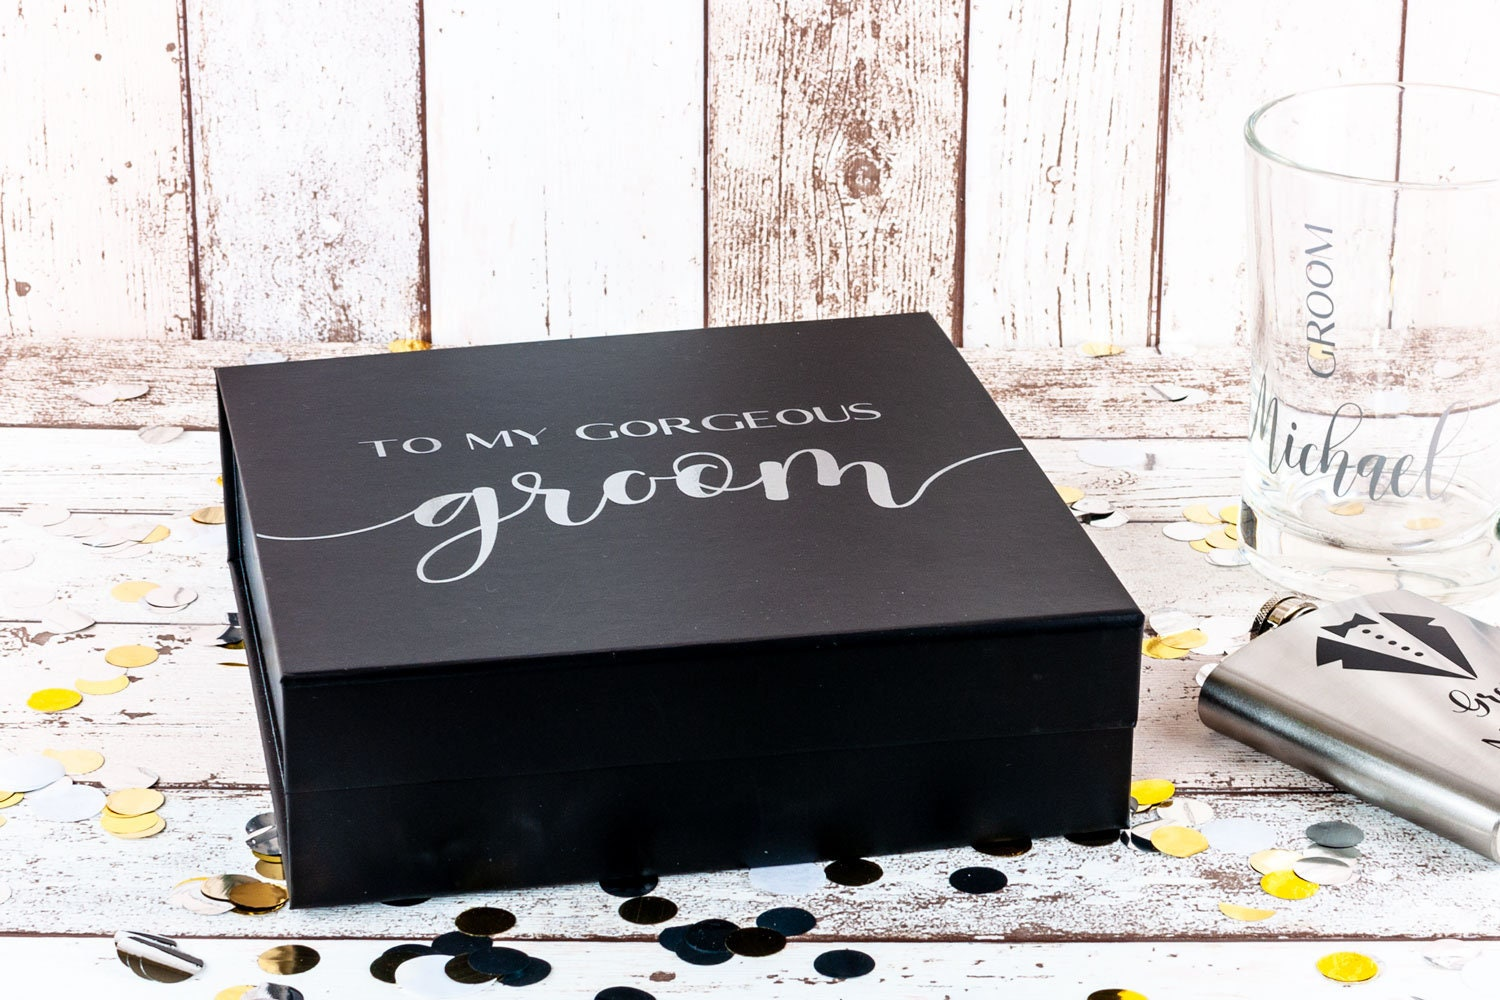 Wedding Gift For Husband To Be: Groom Box To My Groom Wedding Day Gift Box Husband To Be